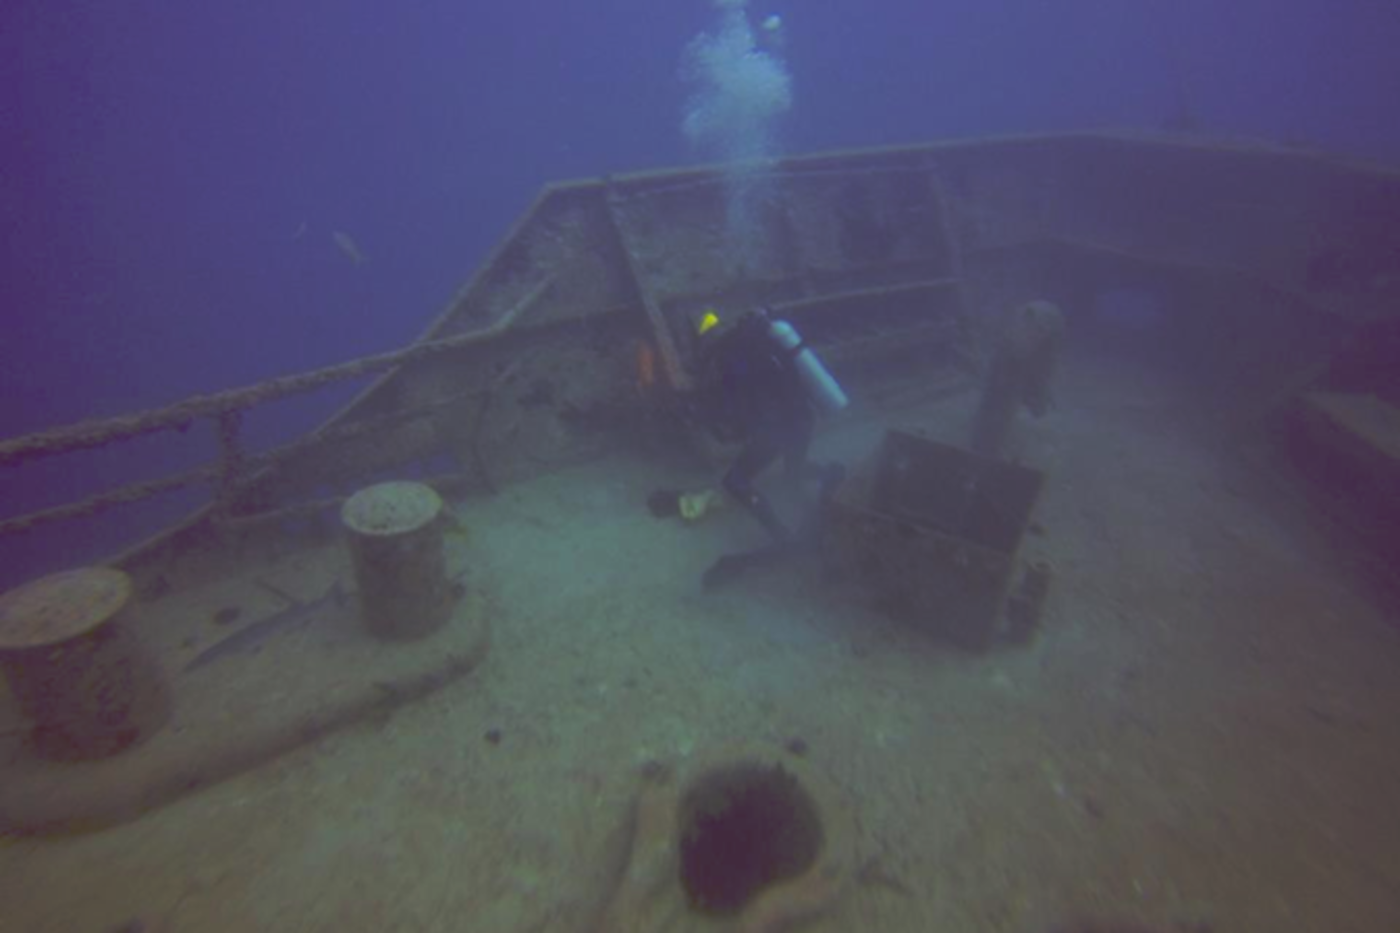 A scuba diver on the deck of a submerged boat